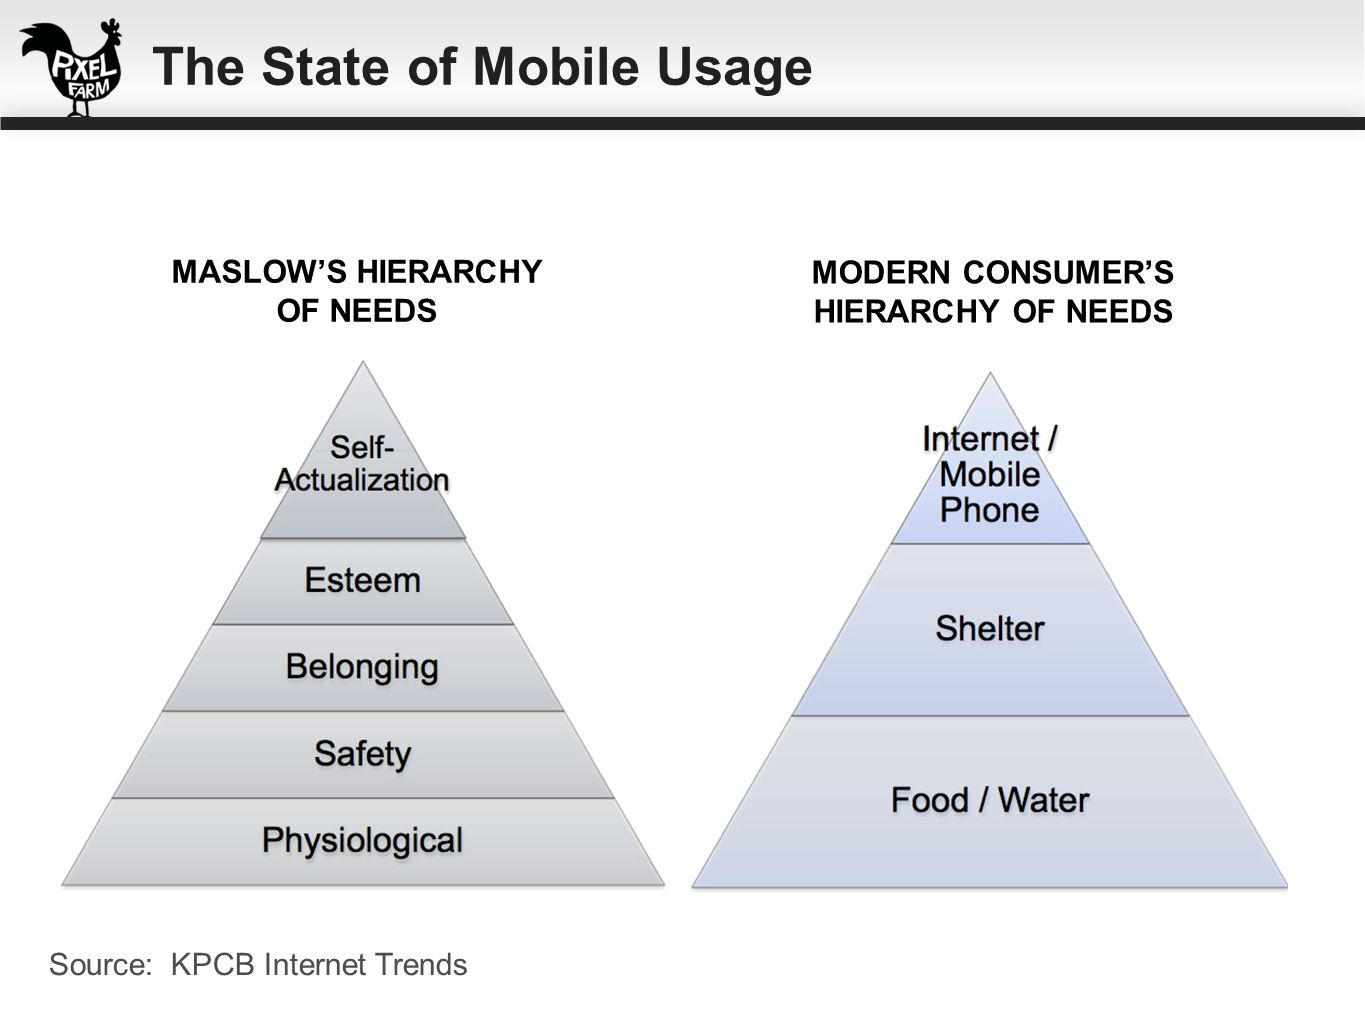 Source: KPCB Internet Trends